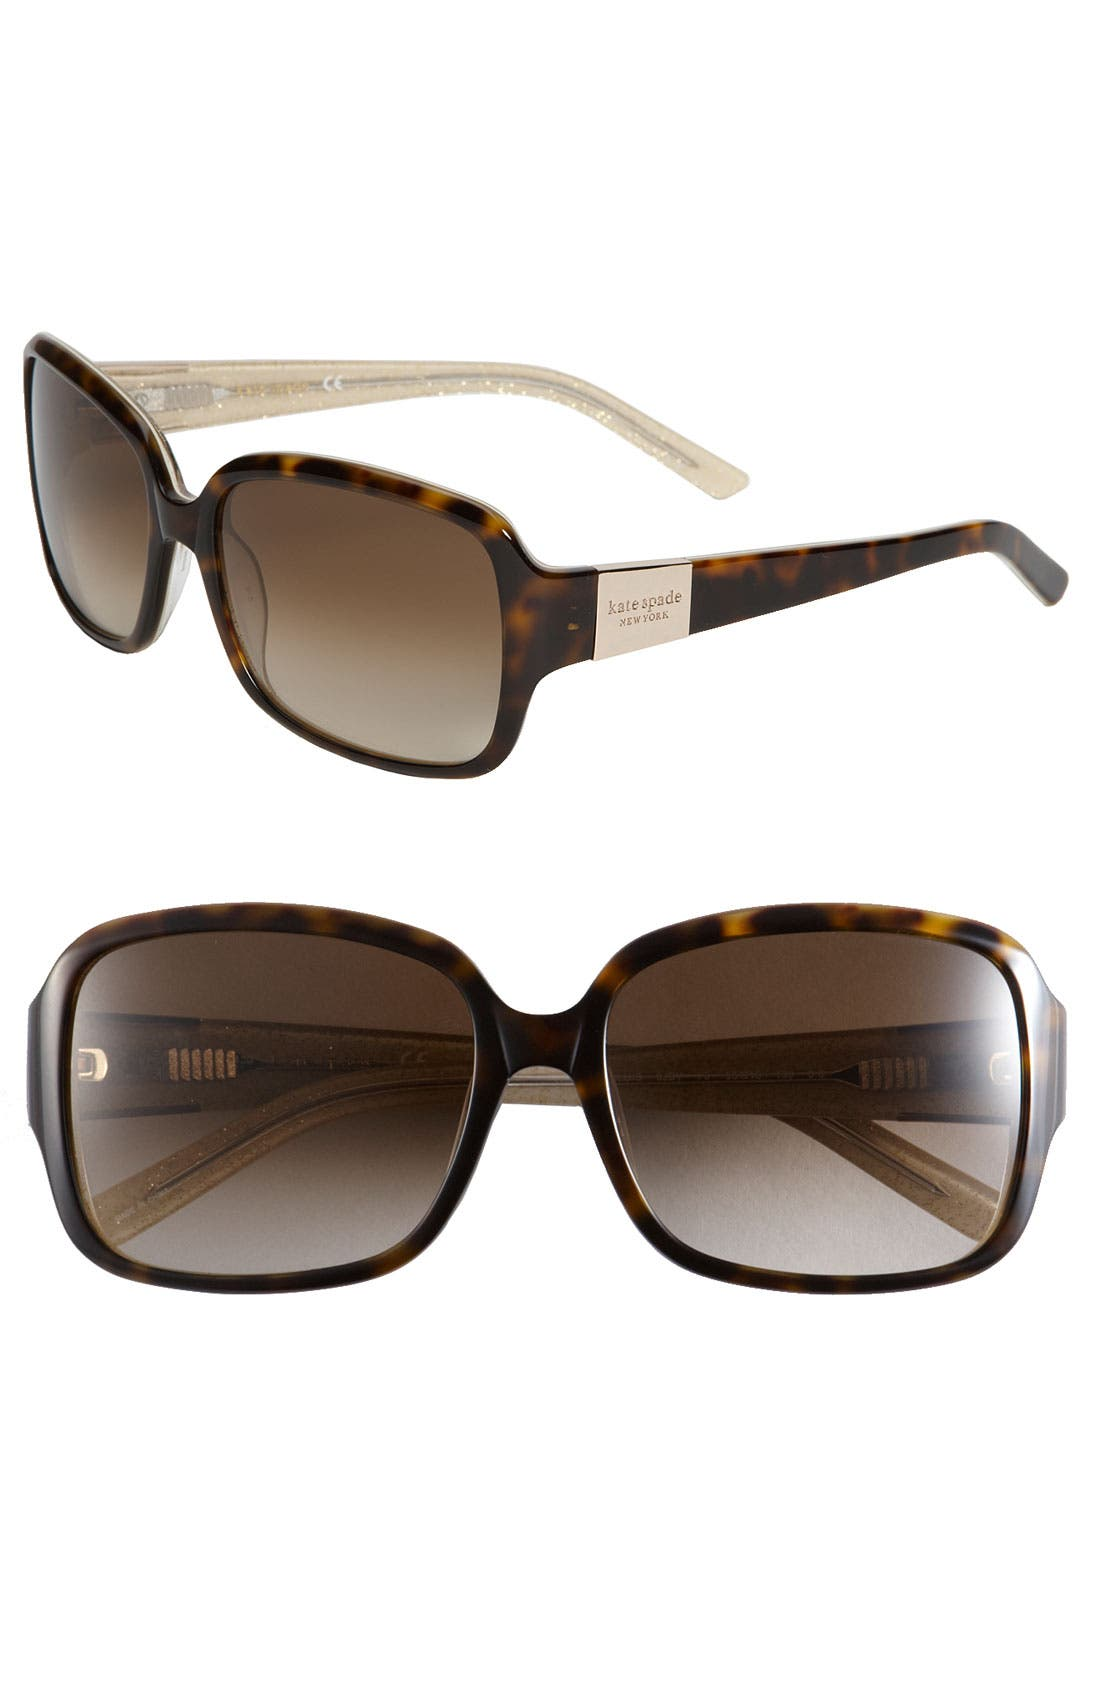 KATE SPADE 'LULU' 55MM RECTANGULAR SUNGLASSES - TORTOISE/ GOLD, TORTOISE GOLD